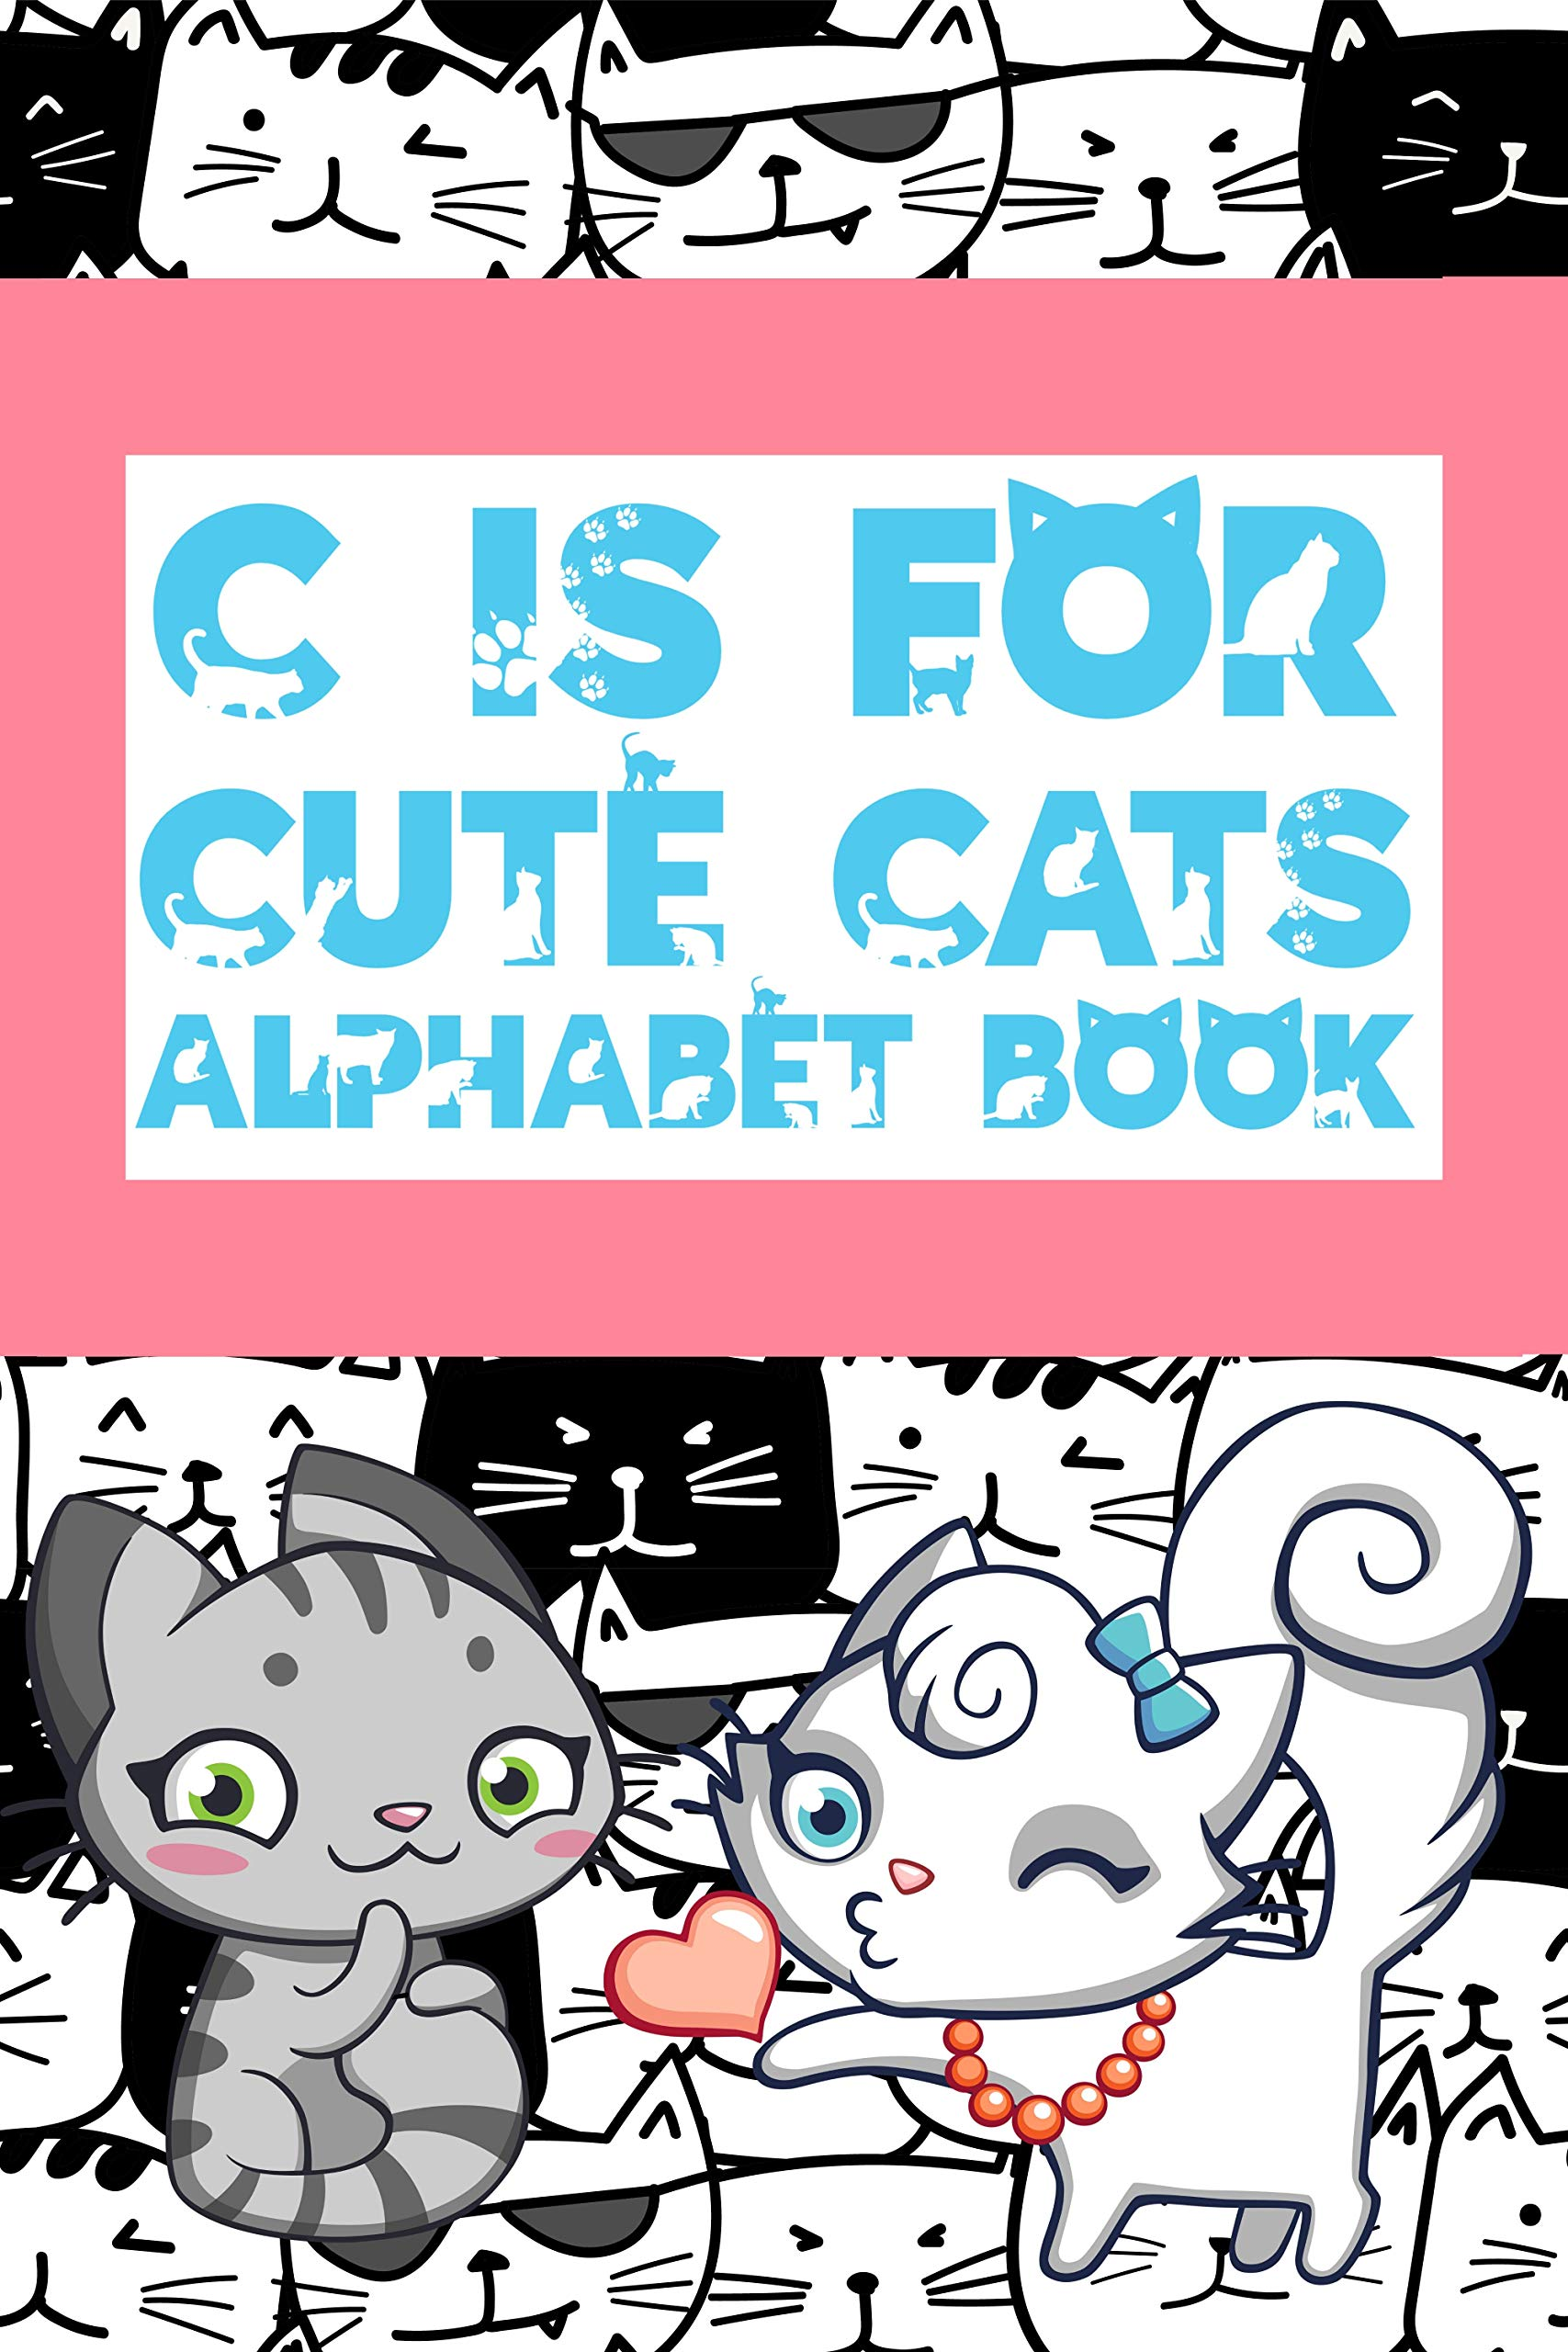 C is for Cute Cats Alphabet Book: A Rhyming Verse ABC Children's Book for Kids ages 3-5 about Cute Cuddly Feline Pets (ABC Books for Preschool and Kindergarten 2)